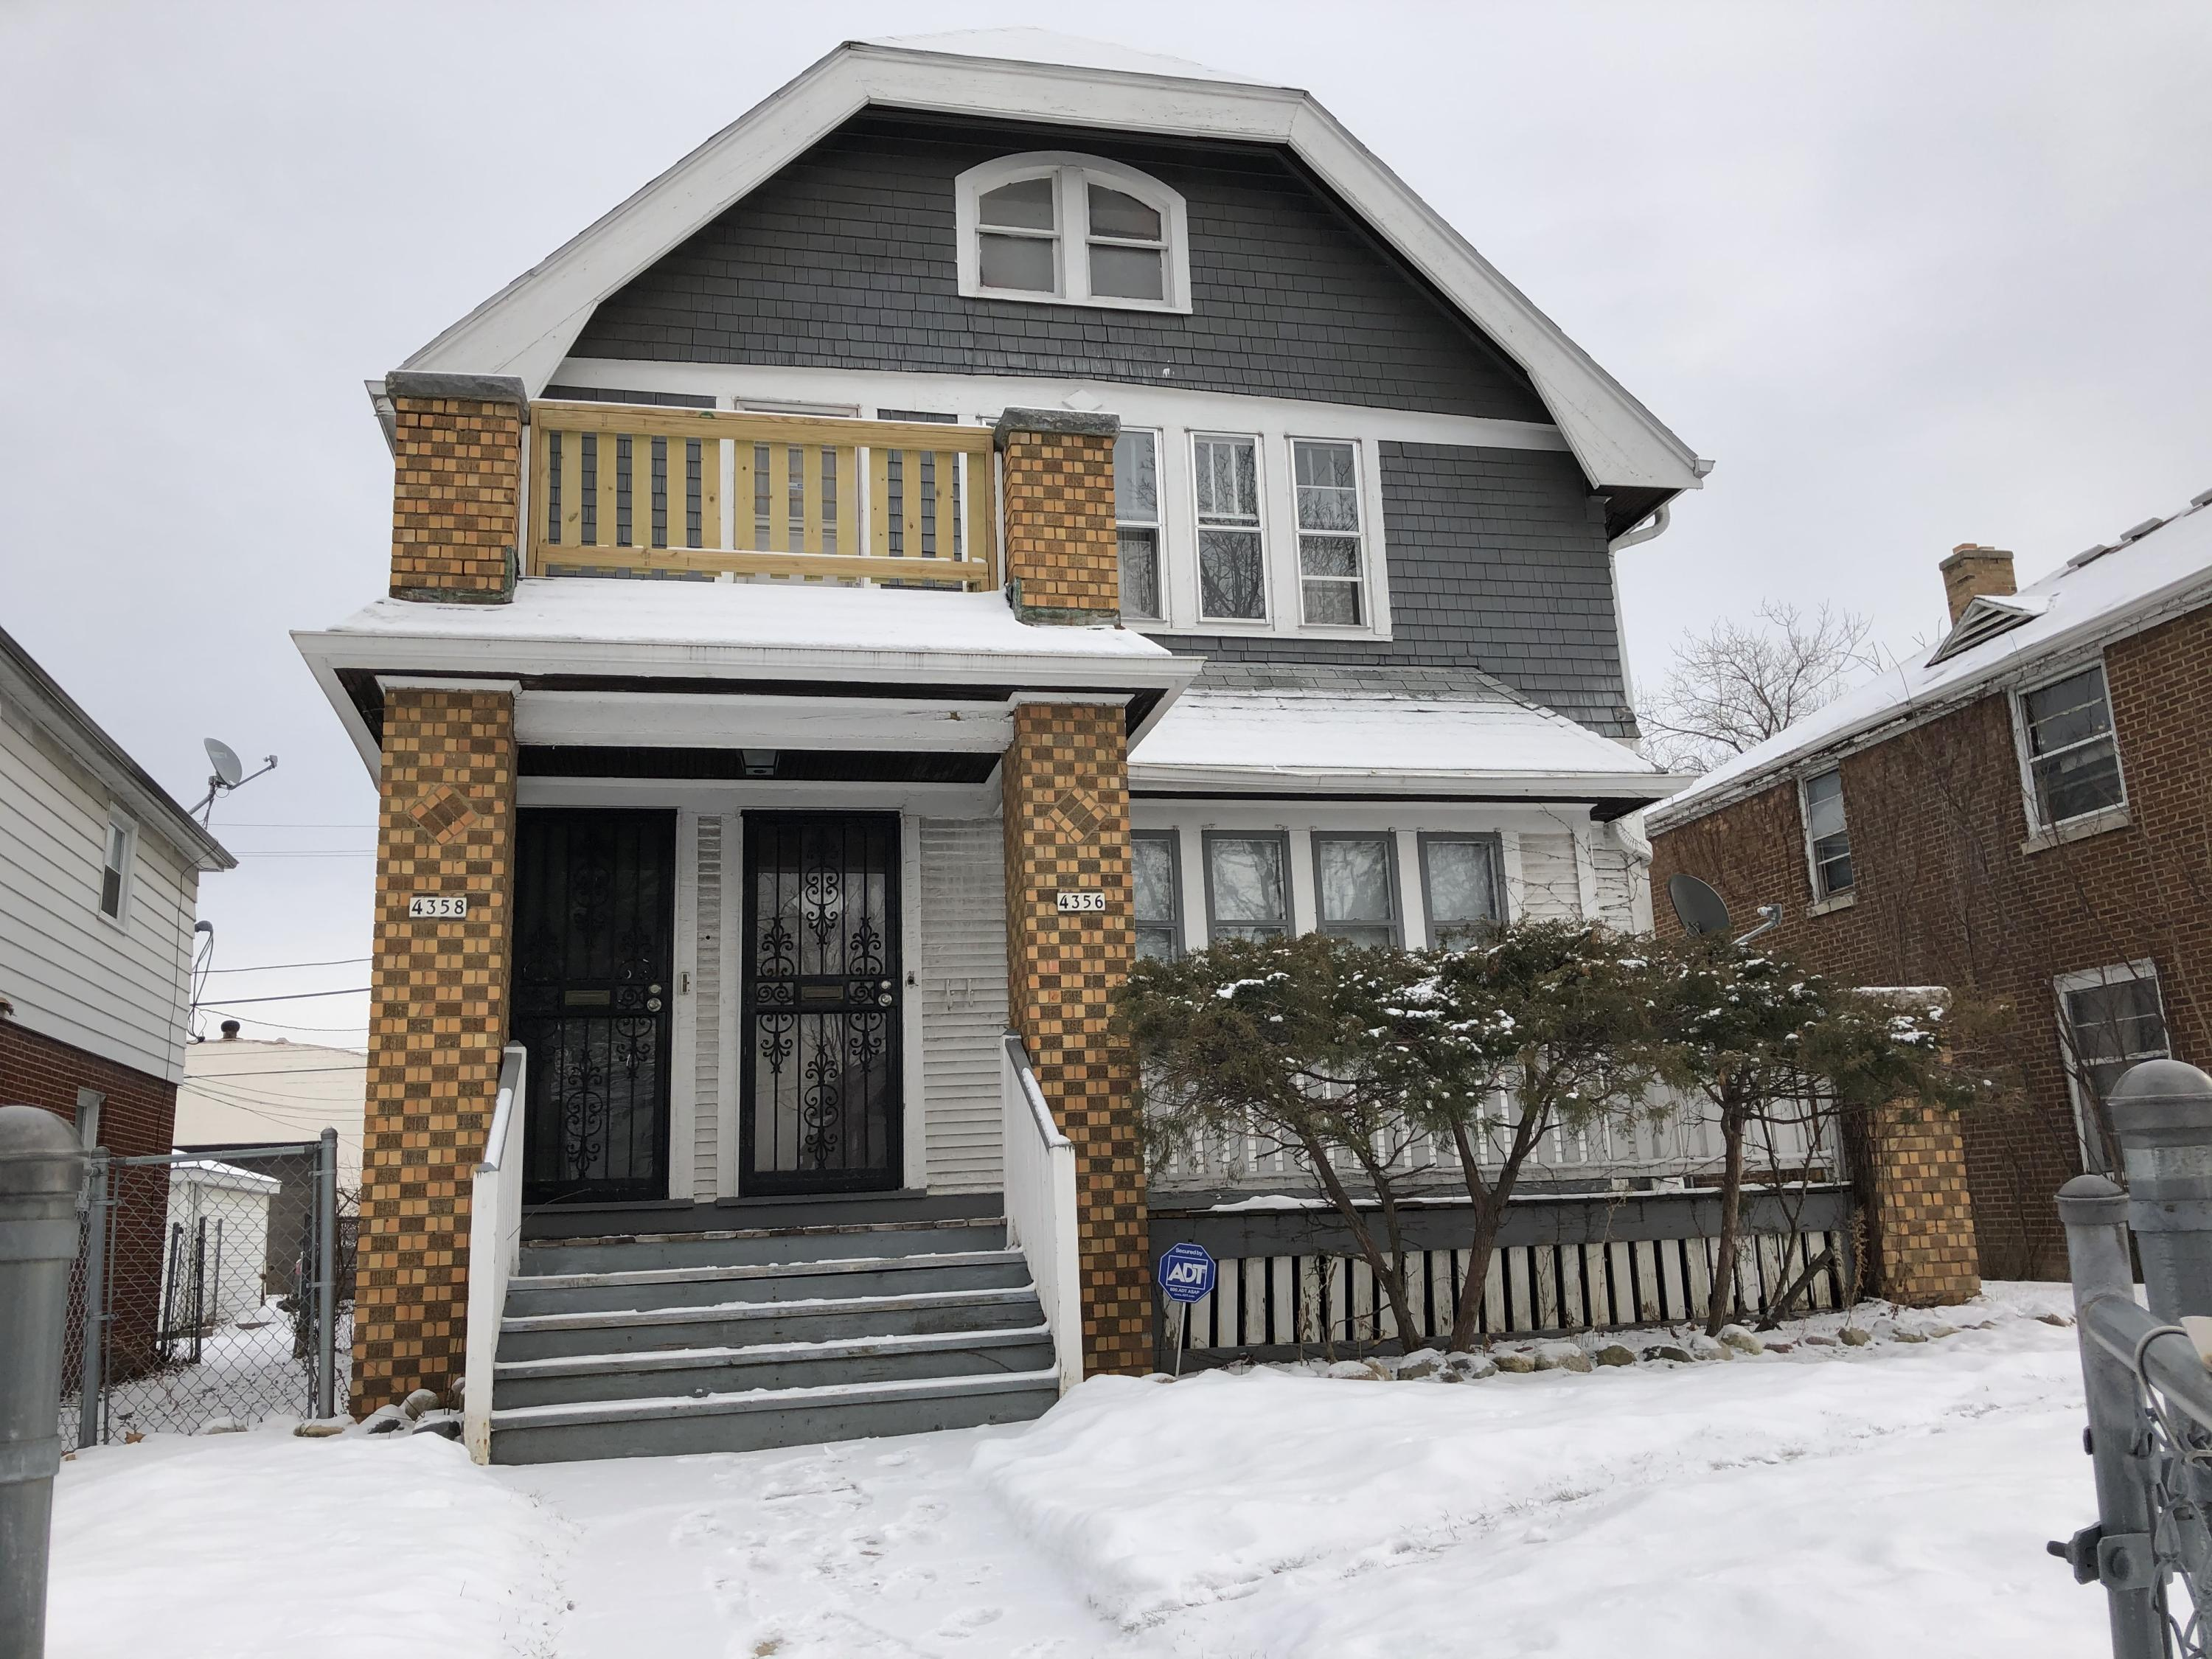 4356 28th St, Milwaukee, Wisconsin 53216, 2 Bedrooms Bedrooms, 5 Rooms Rooms,1 BathroomBathrooms,Two-Family,For Sale,28th St,1,1724956